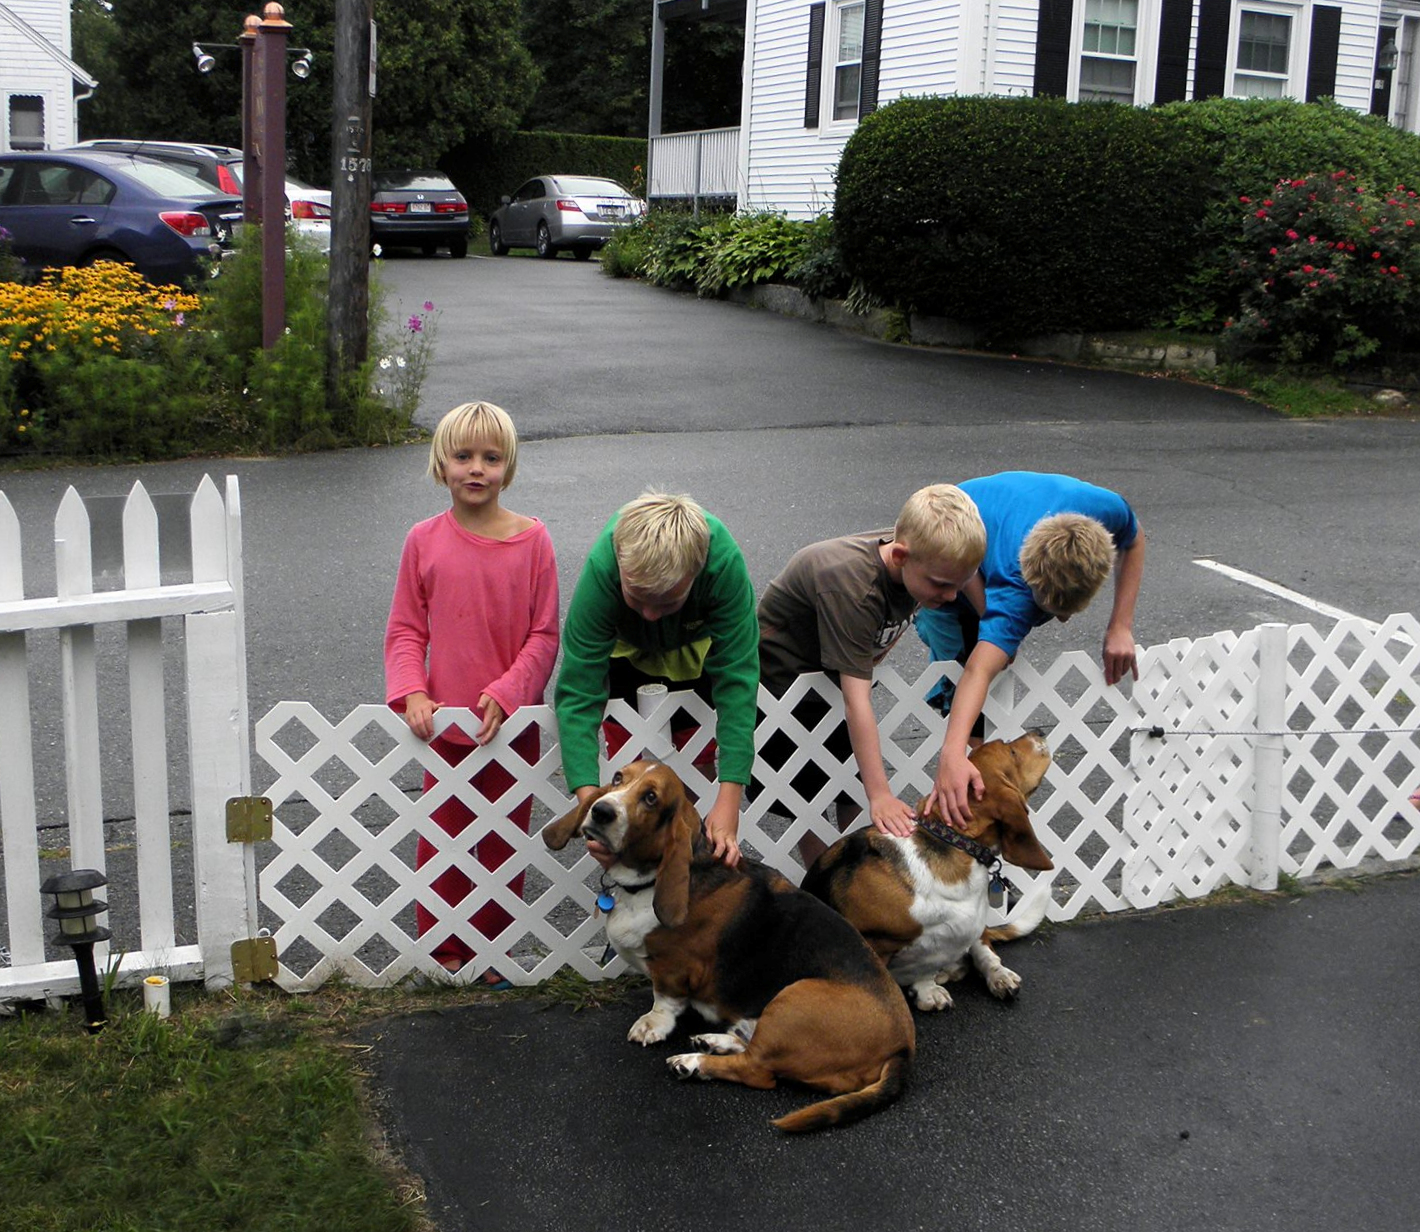 Neighborhood kids with Bassets